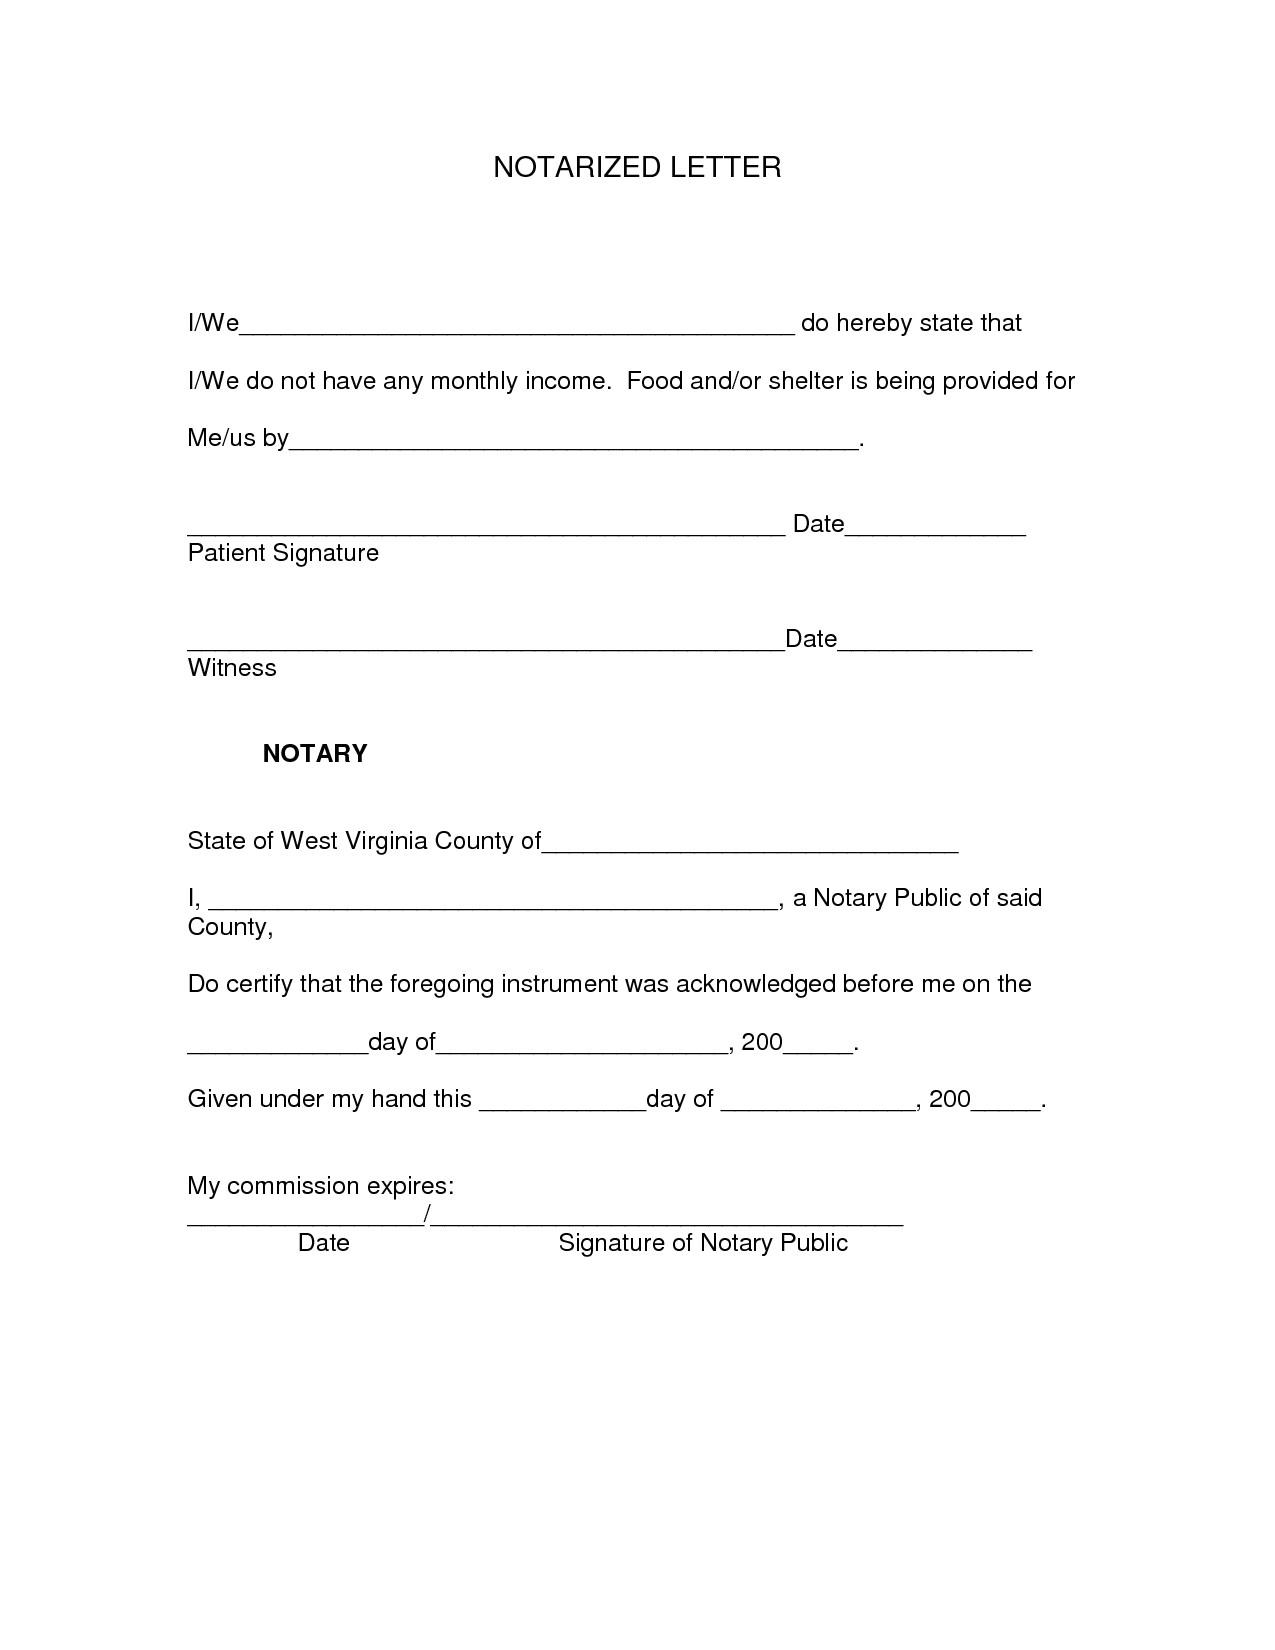 post generic notary letters 441368